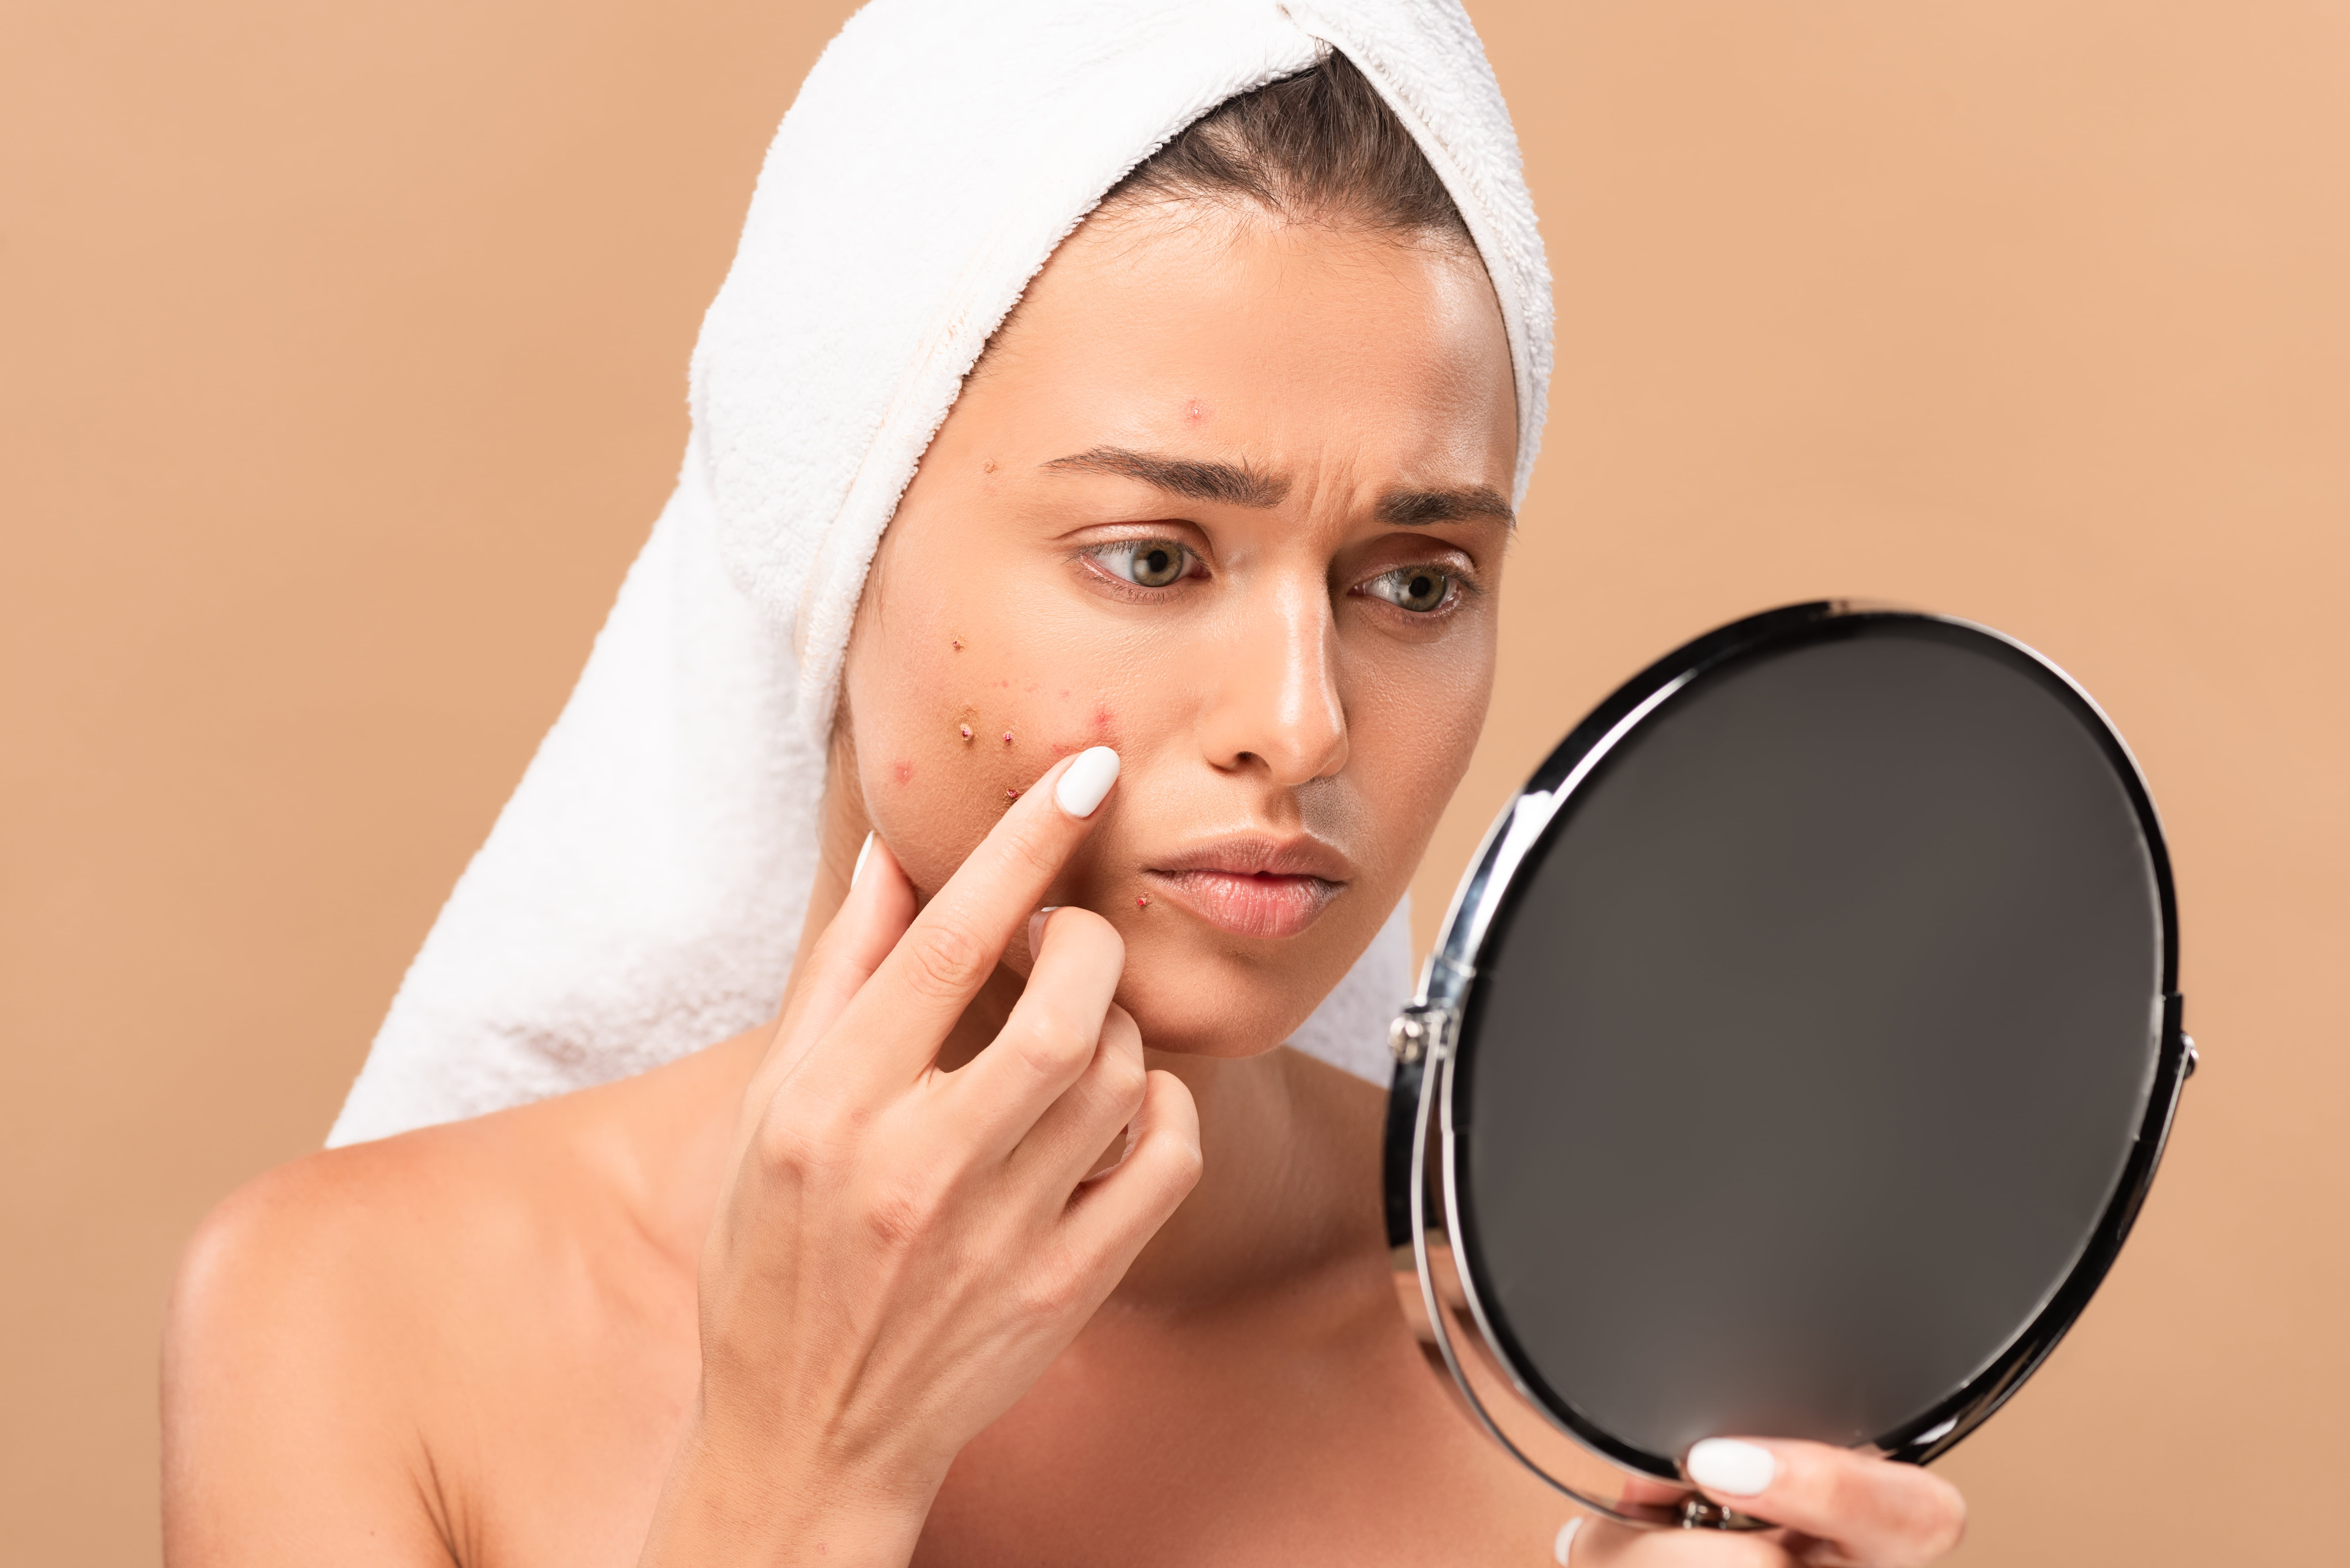 Photo of a girl showing acne problems